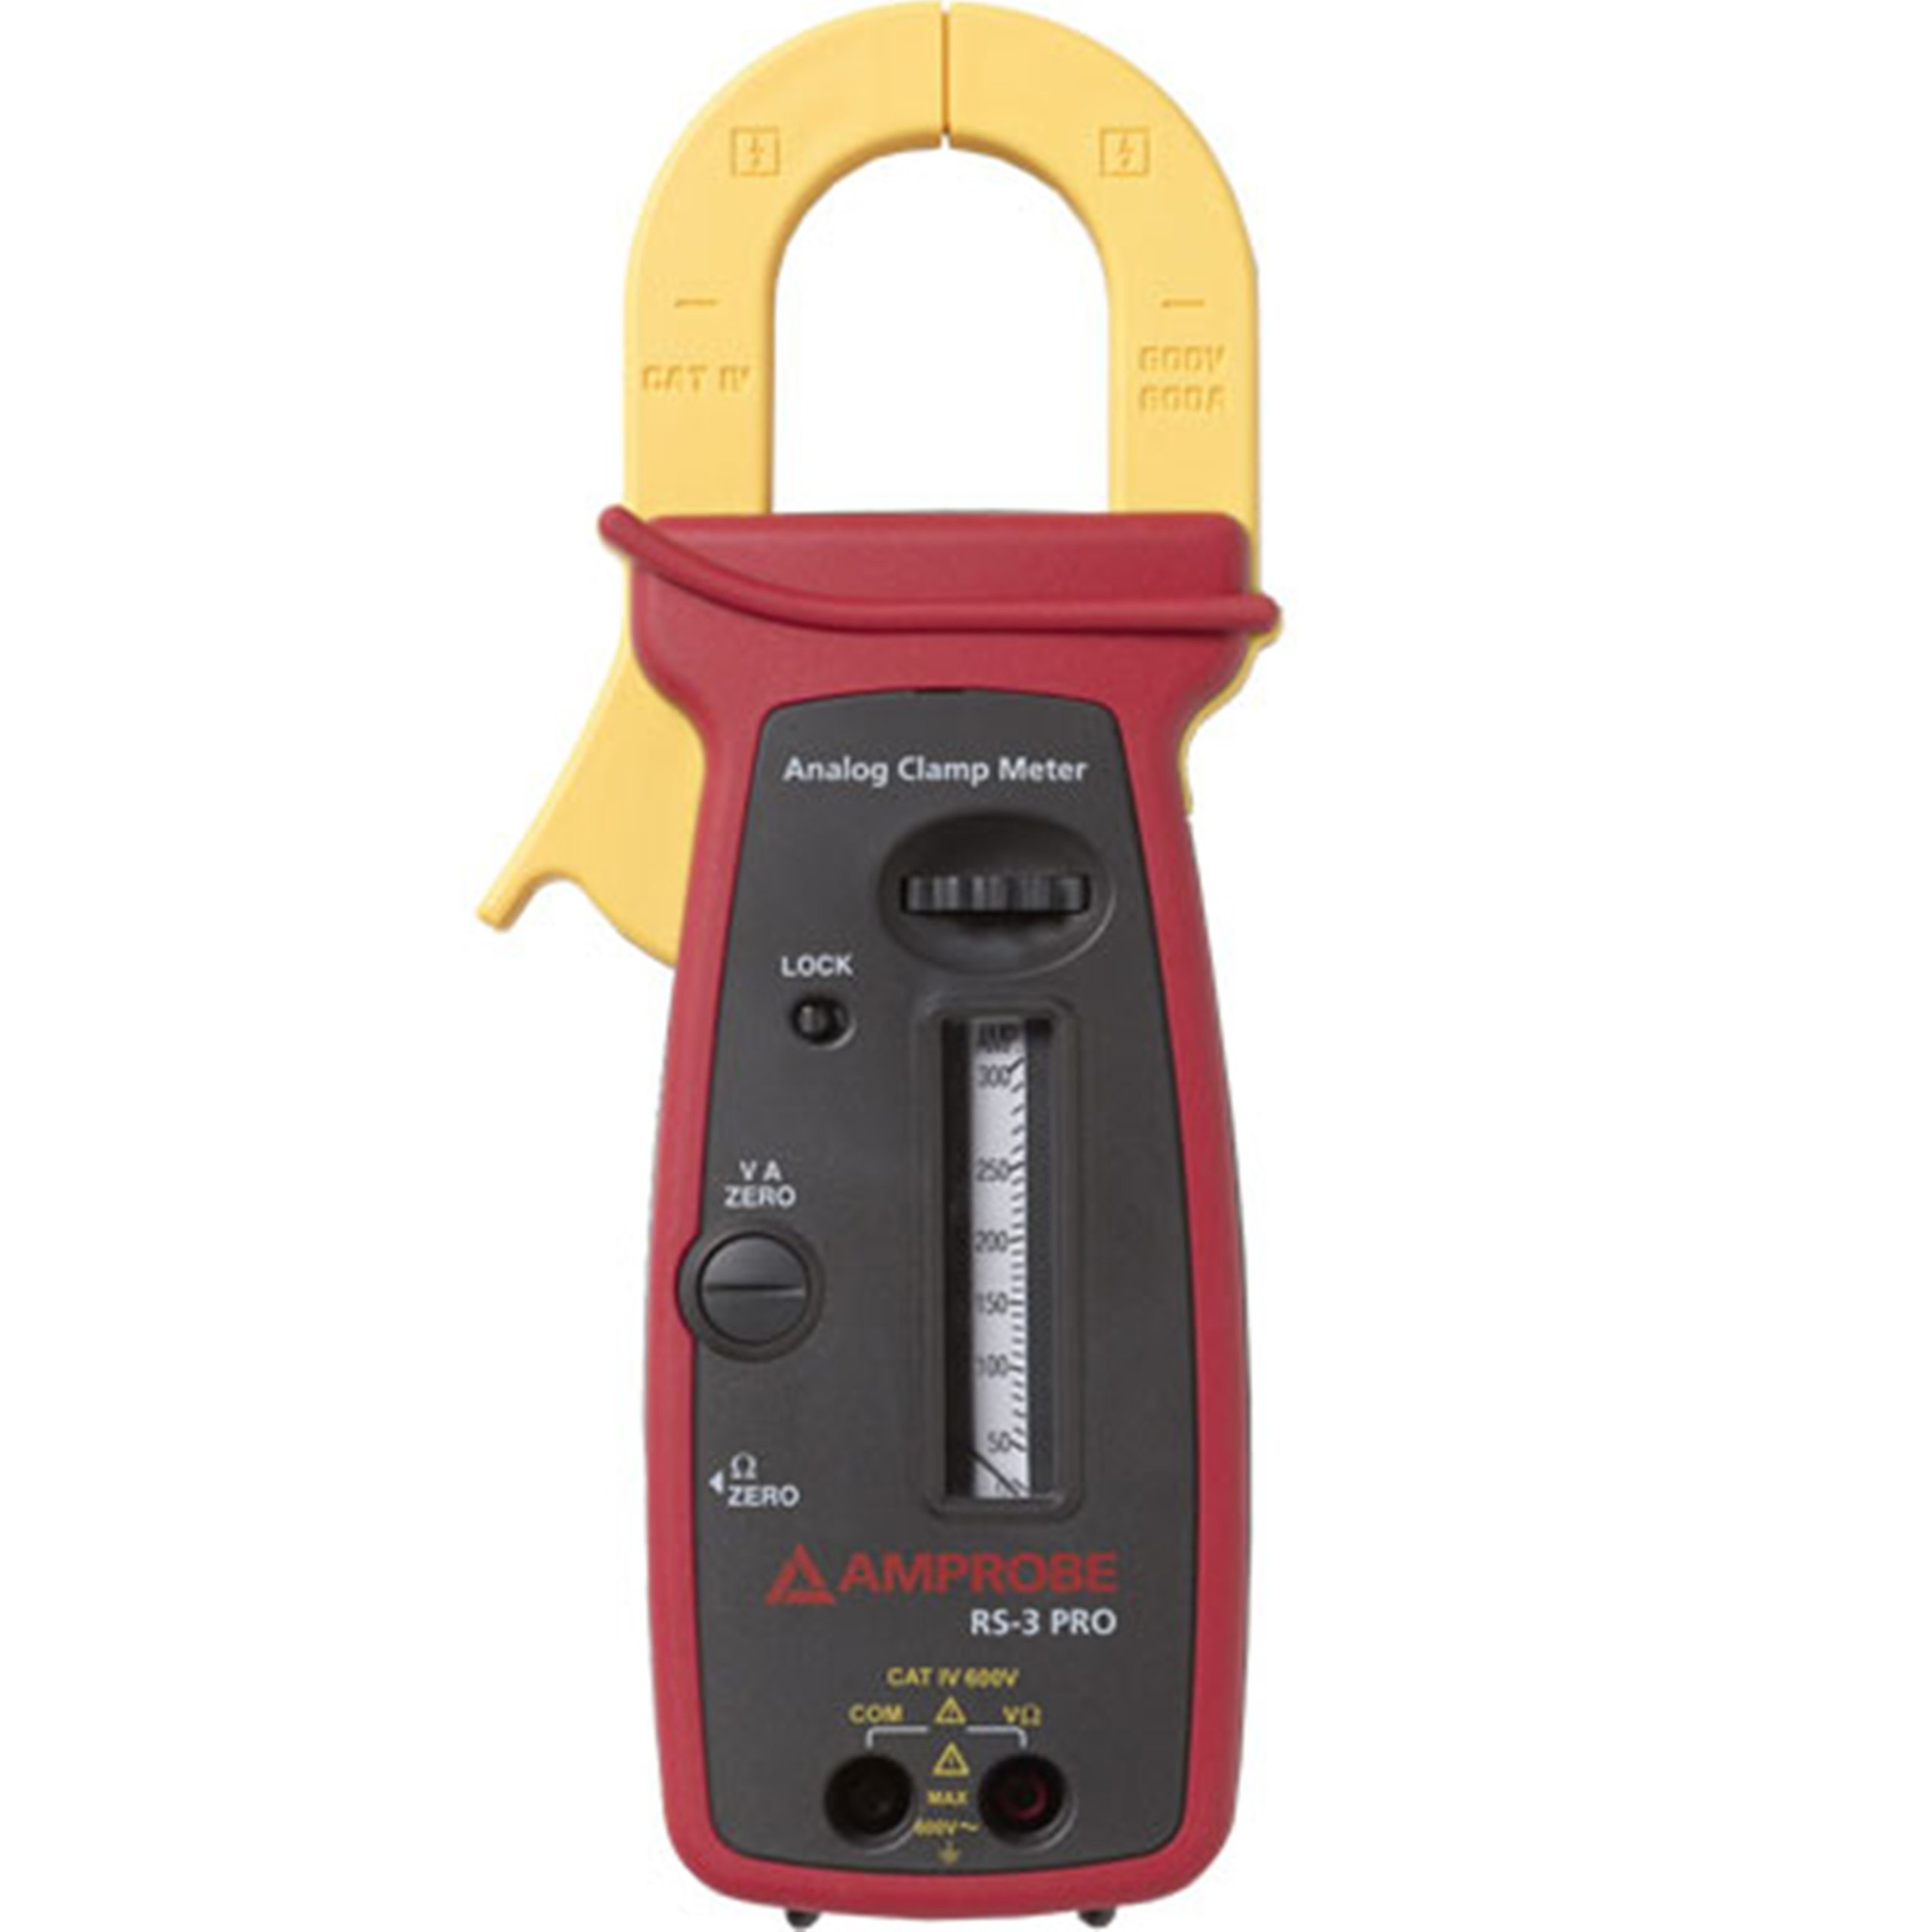 Amprobe - 3467465 RS-3 PRO CAT IV 300A Analog Clamp Meter